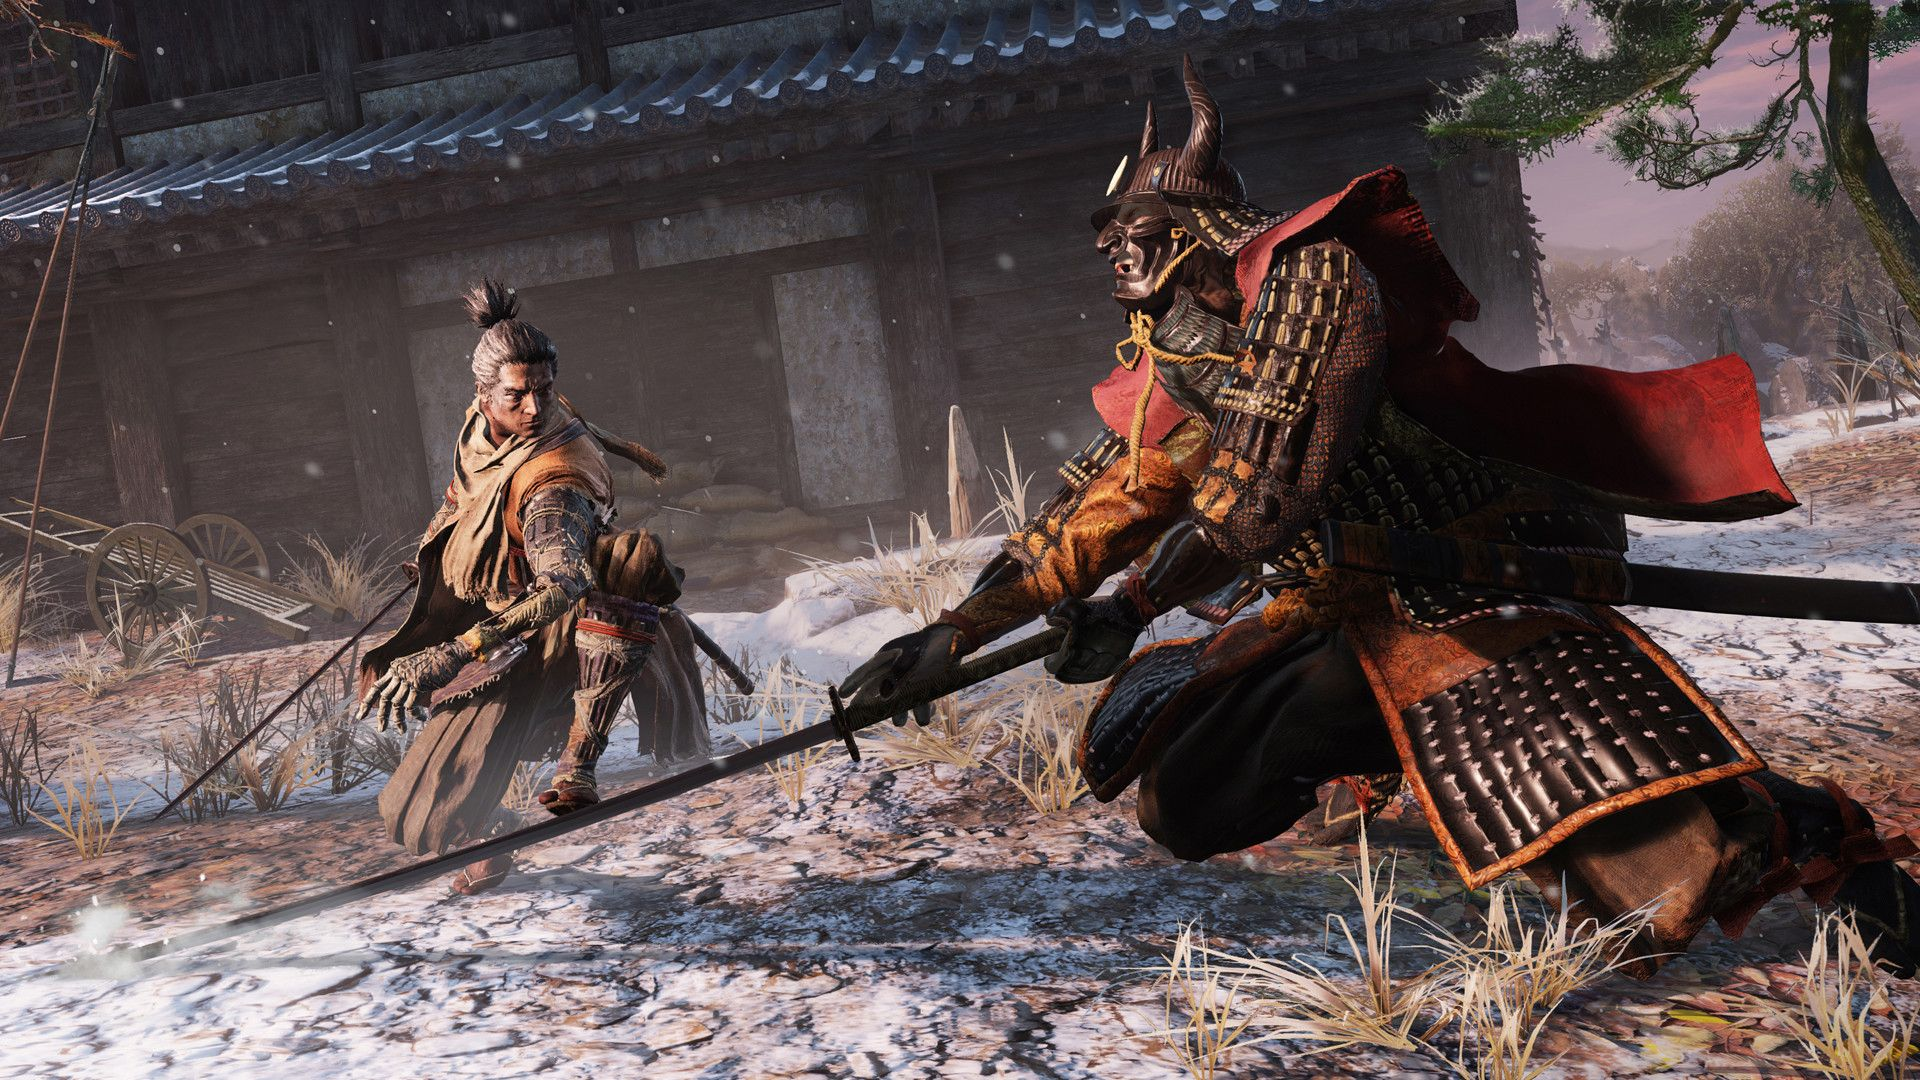 Come watch 11 minutes of cut Sekiro cutscenes